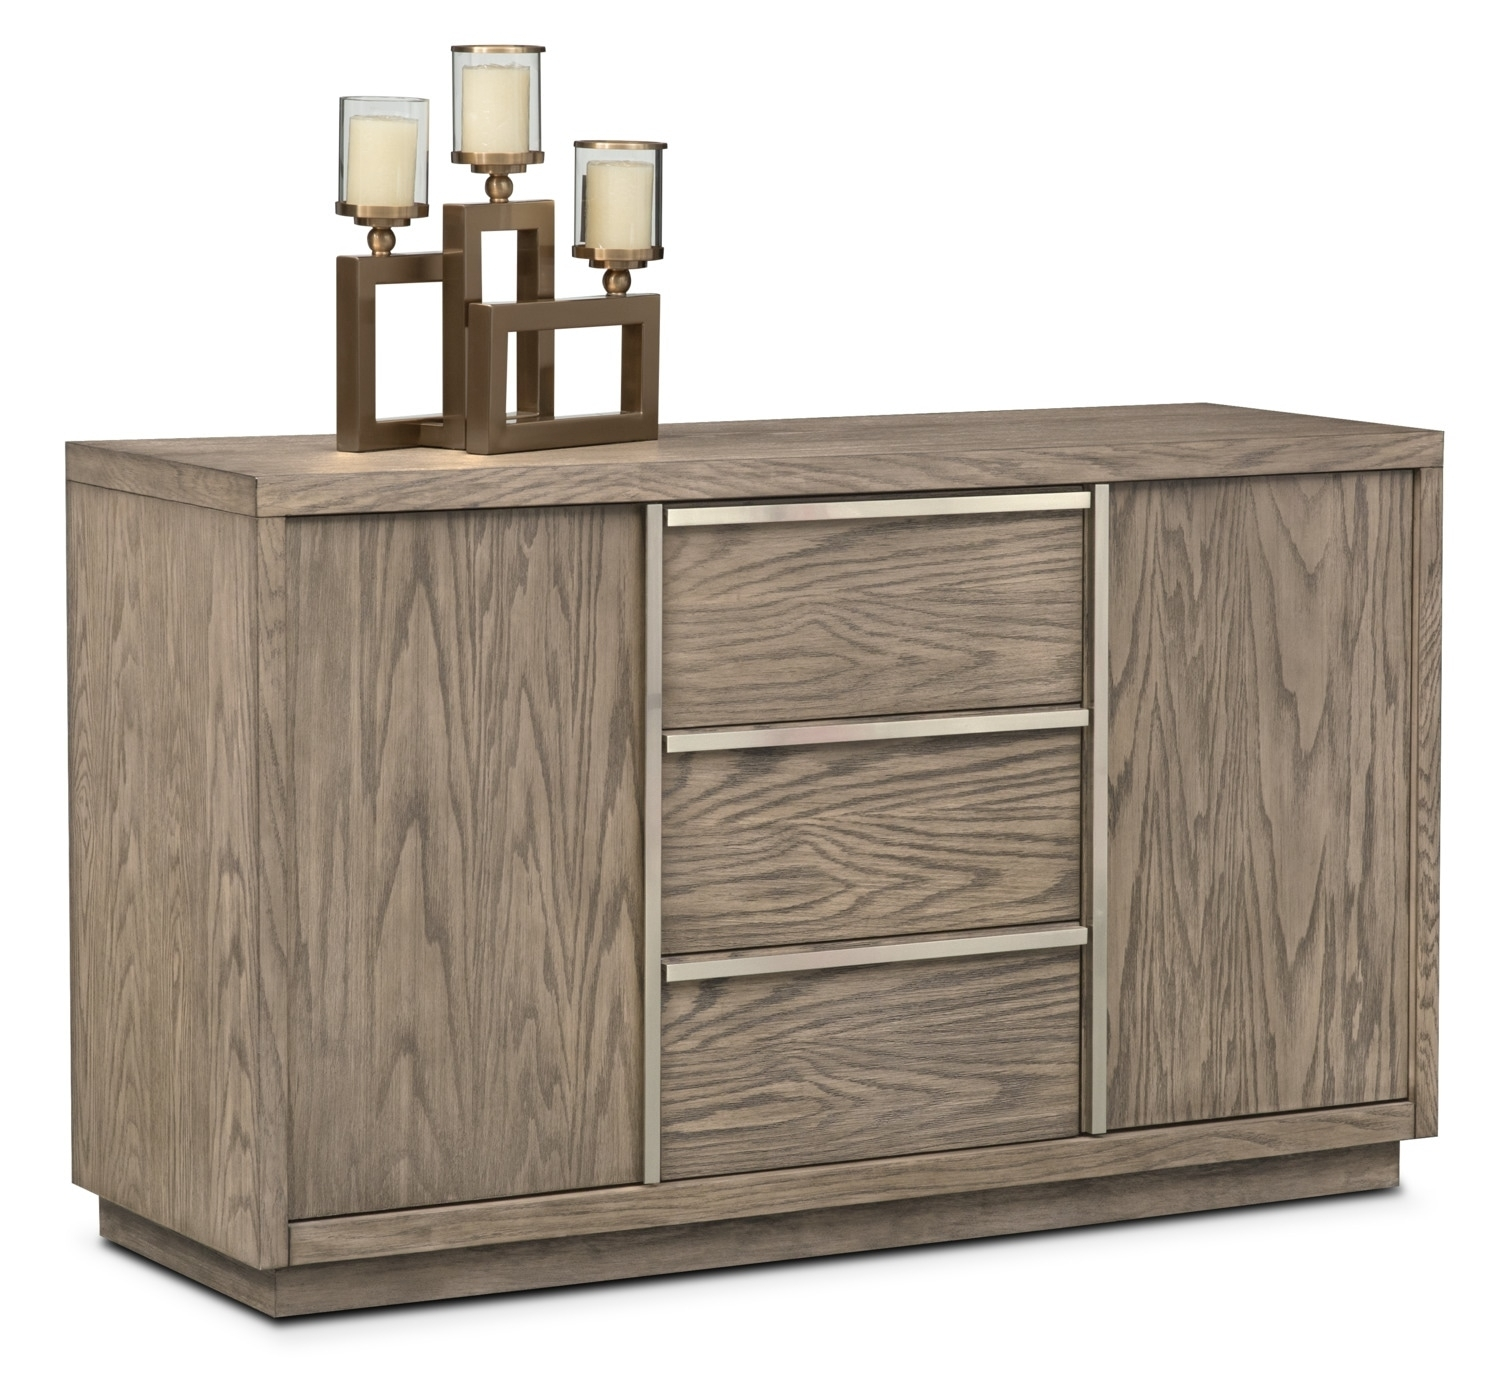 Buffet & Sideboard Cabinets | Value City Furniture And Mattresses With Regard To 2017 Brown Wood 72 Inch Sideboards (#3 of 20)